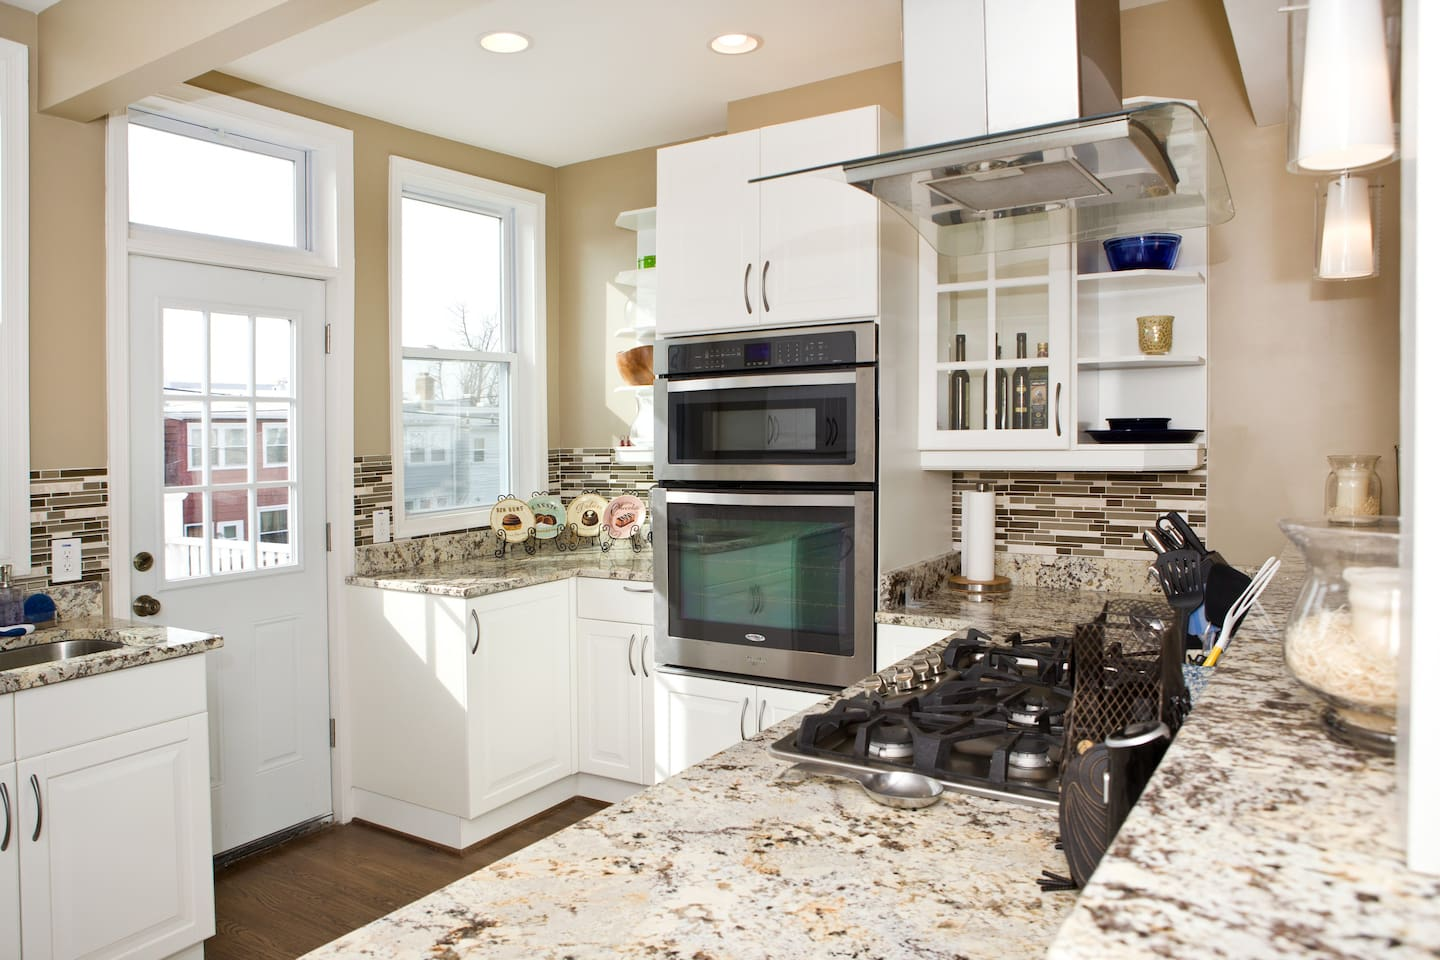 Gourmet chefs kitchen with convection oven!